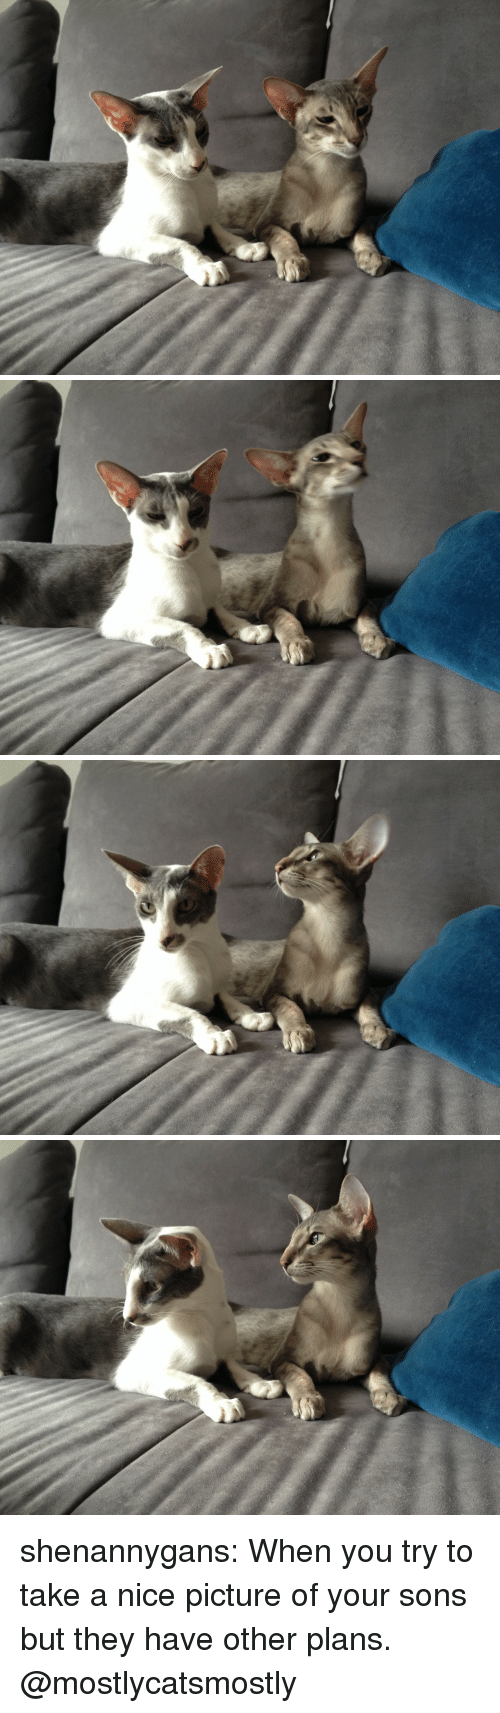 Nice Picture: shenannygans: When you try to take a nice picture of your sons but they have other plans. @mostlycatsmostly